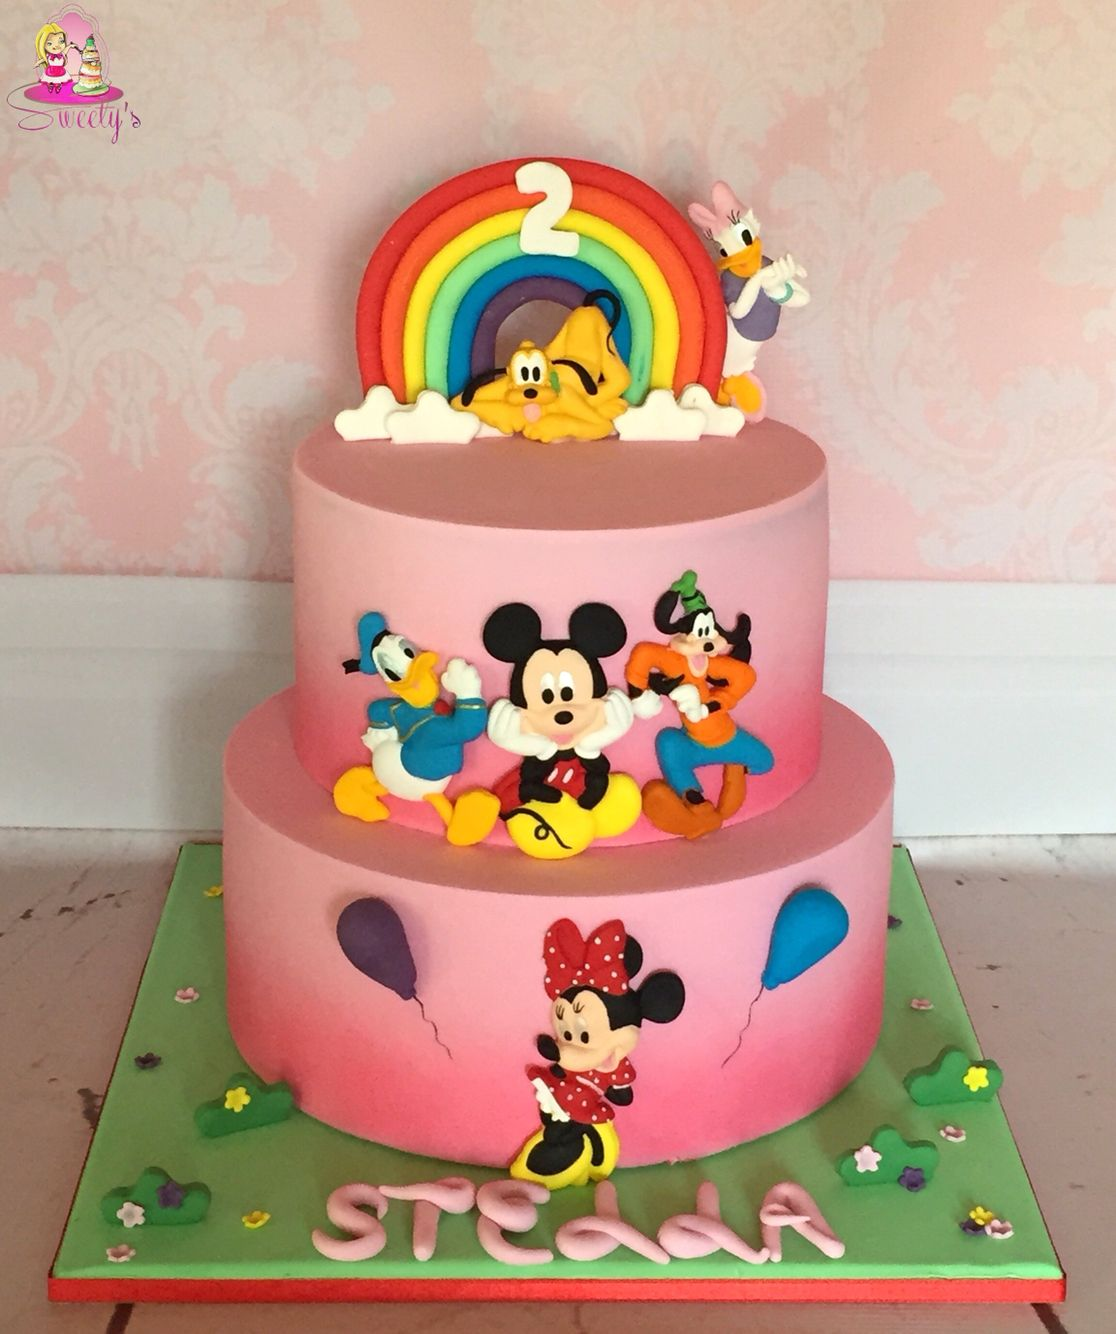 mickey house fondant cake mickey and minnie fondant cake. Black Bedroom Furniture Sets. Home Design Ideas